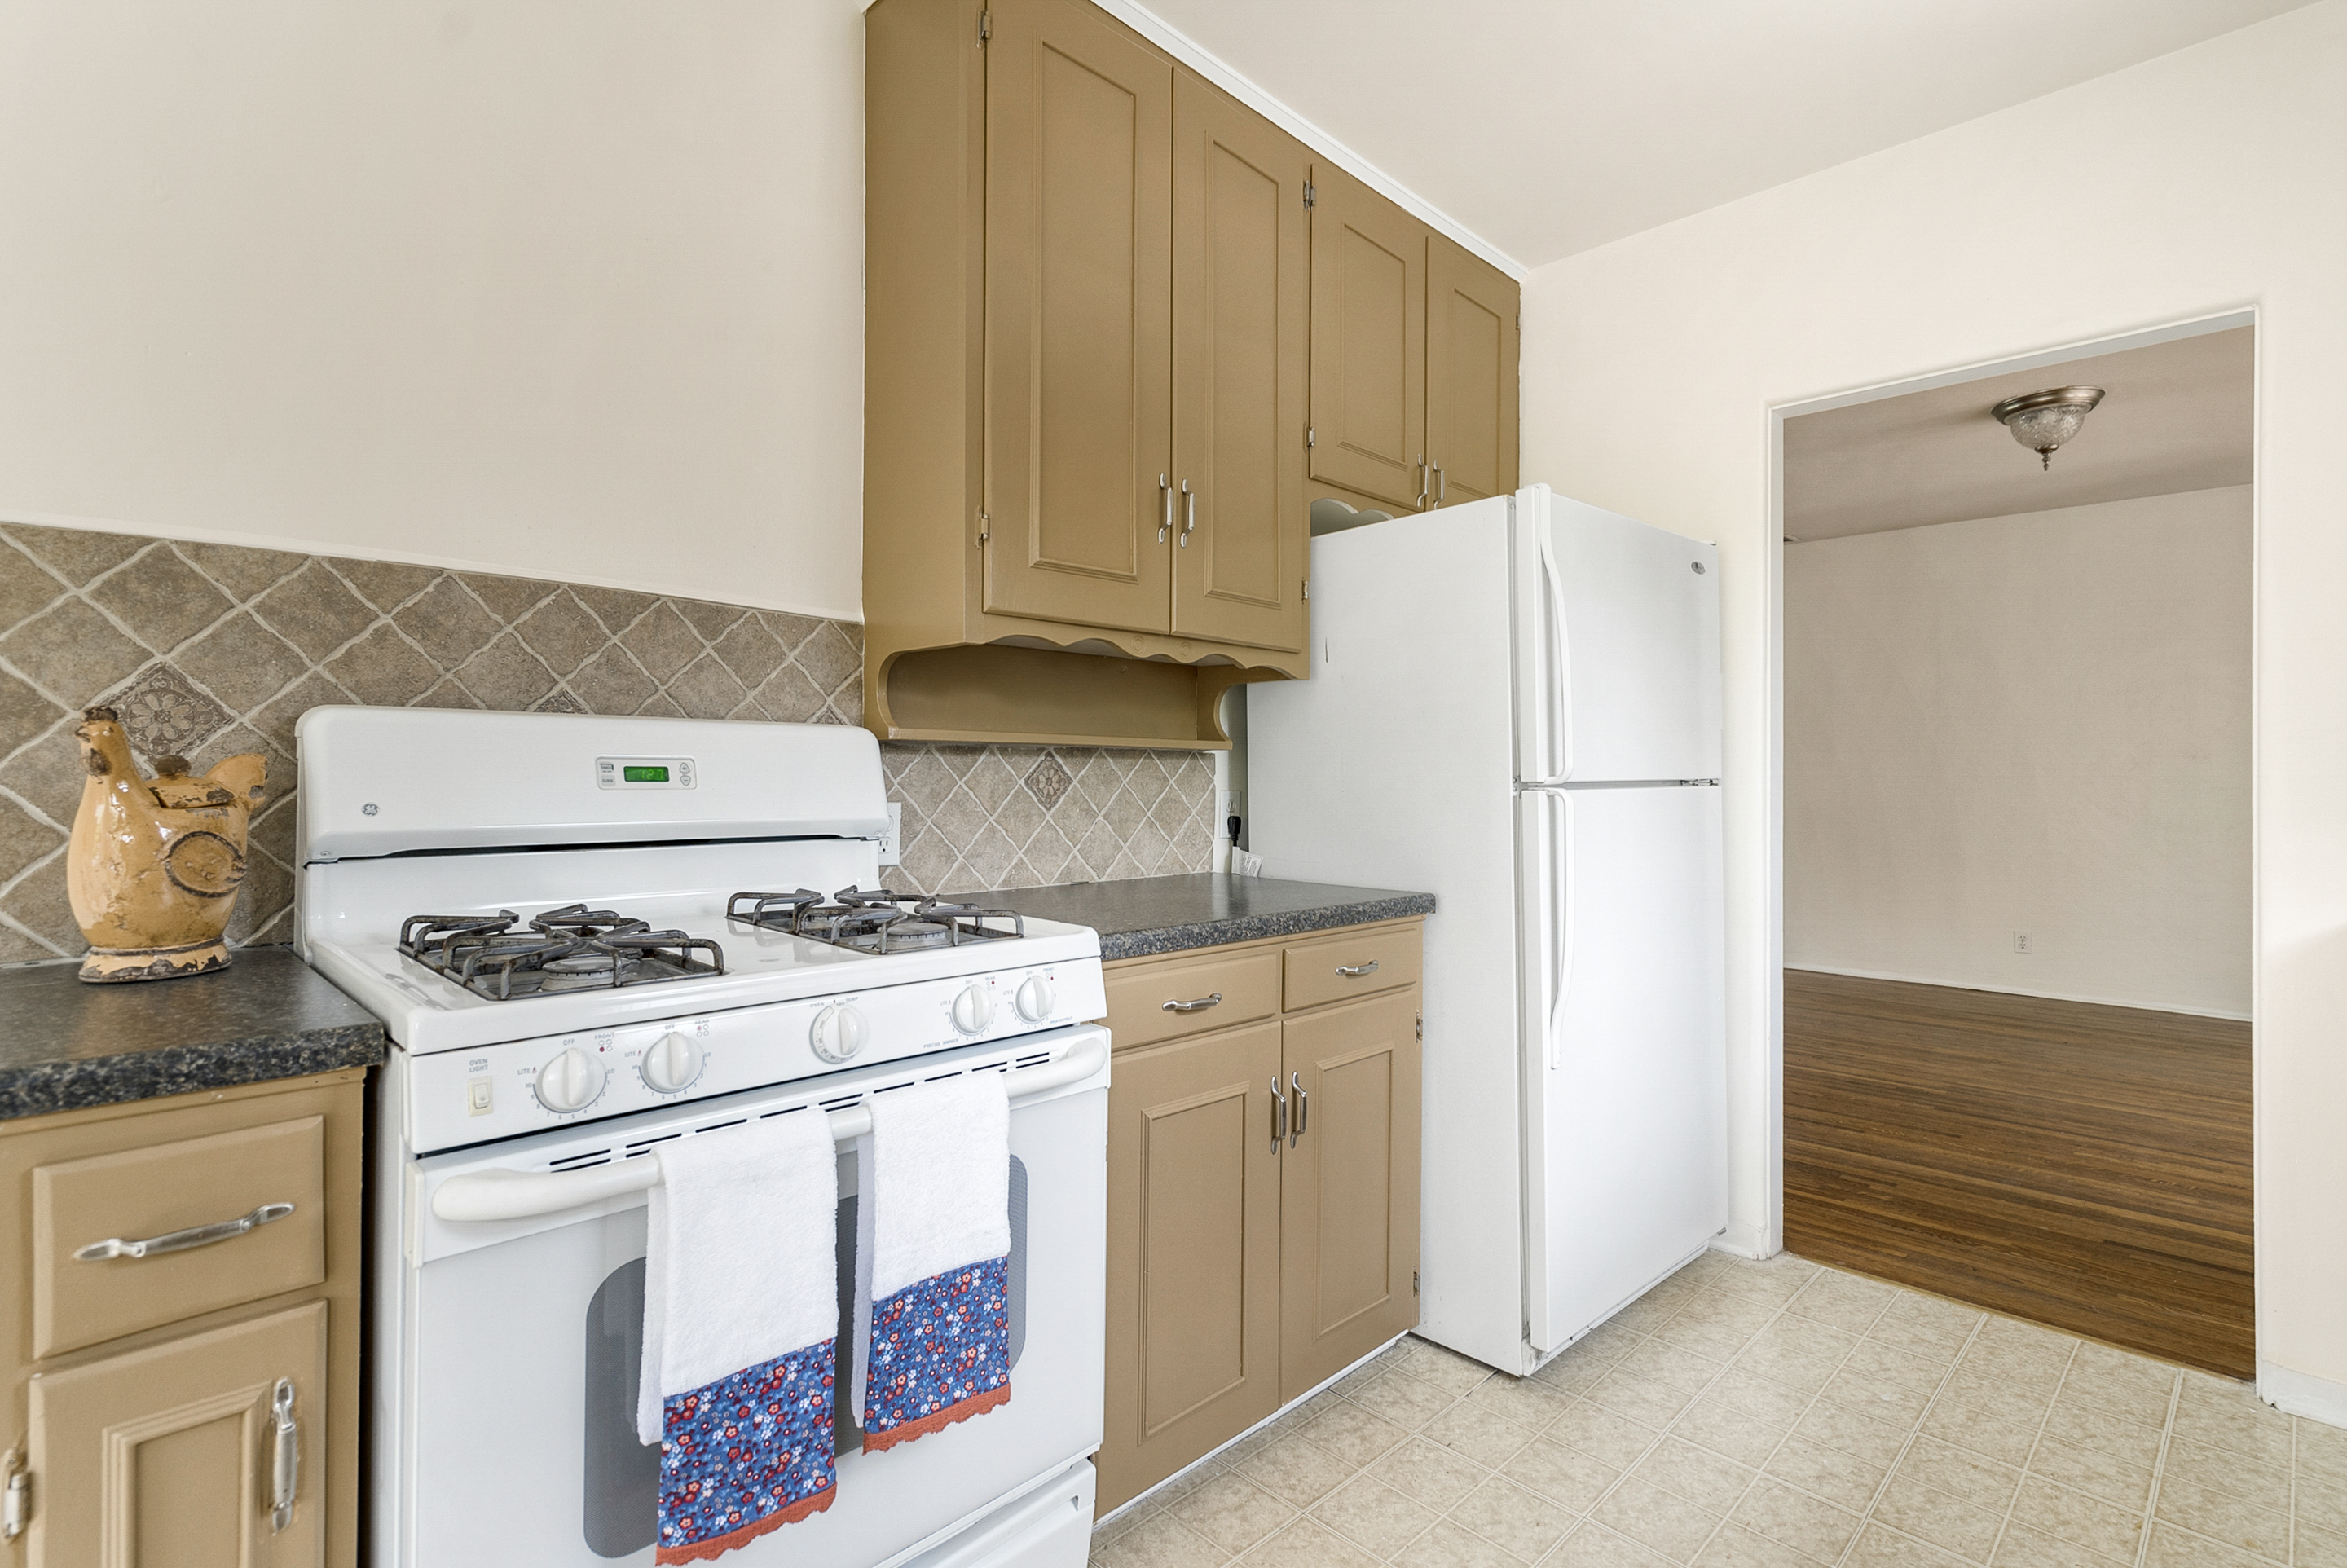 Gas stove and refrigerator included.